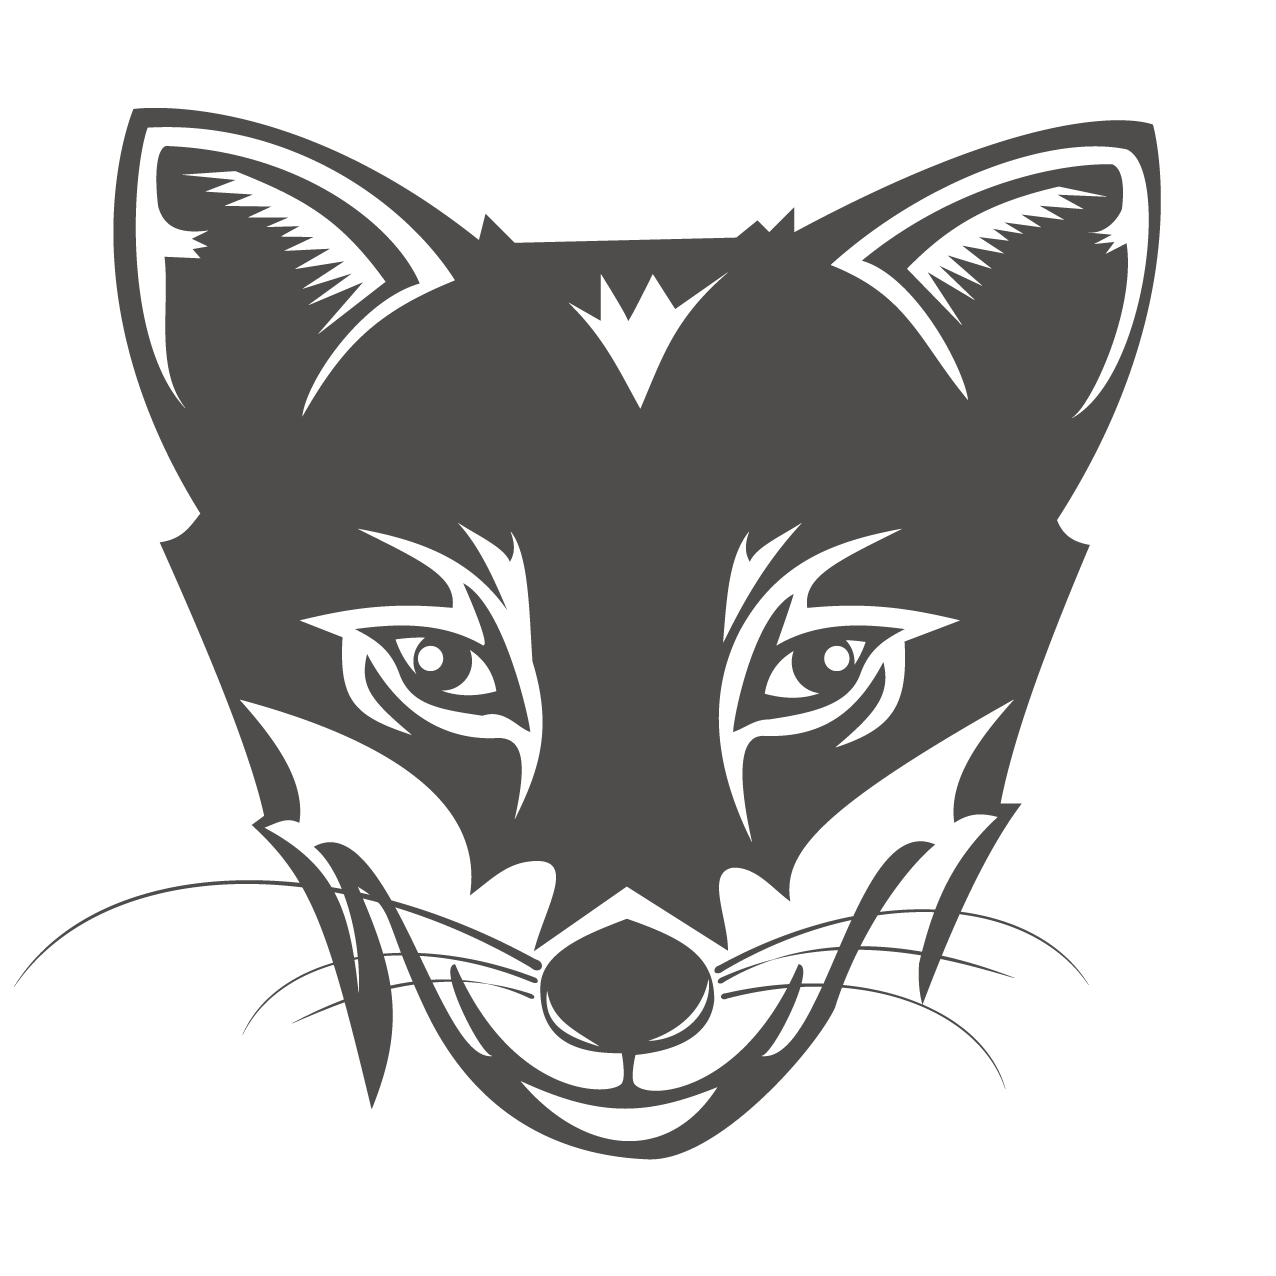 Personality drawing illustration. Fox logo head transprent